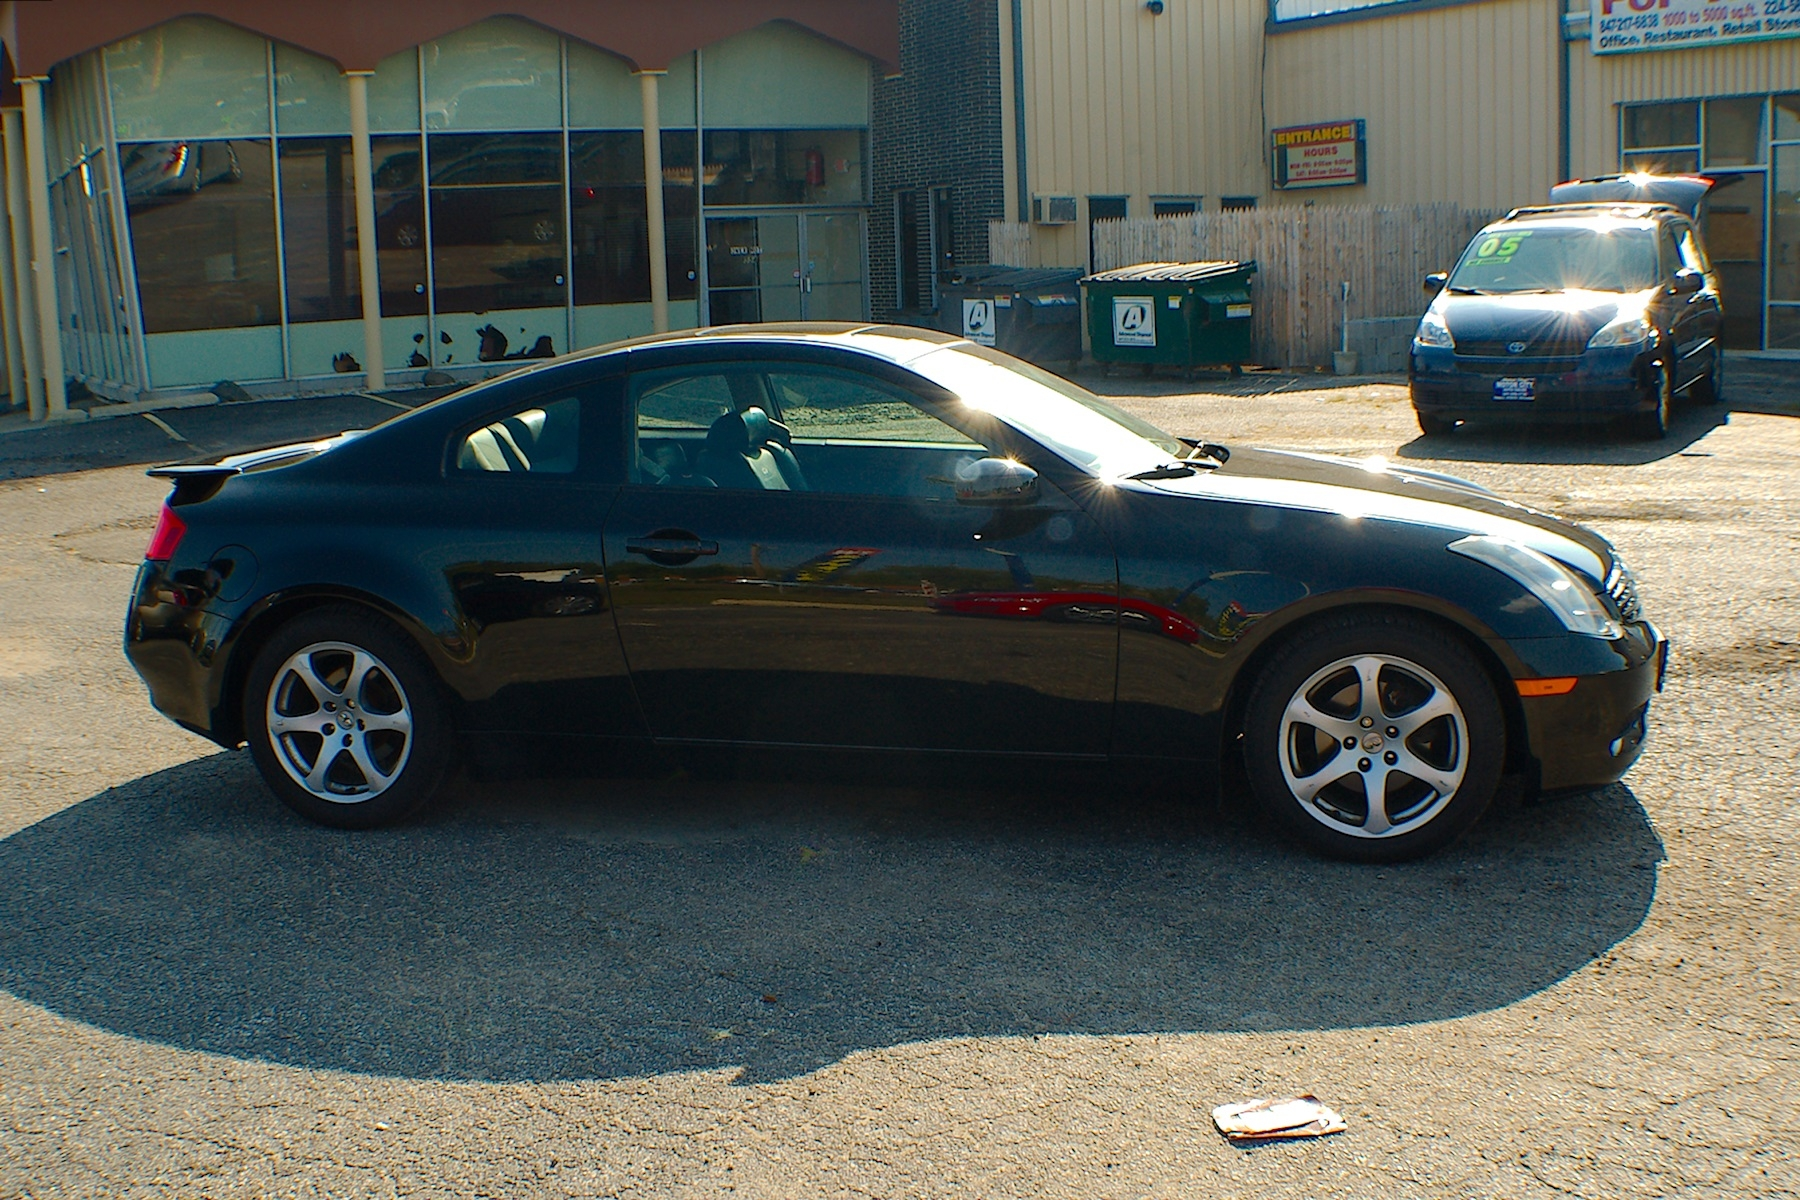 camaro auto sale forums sedan for black infinity non infiniti and lsx coupe vehicles powered on